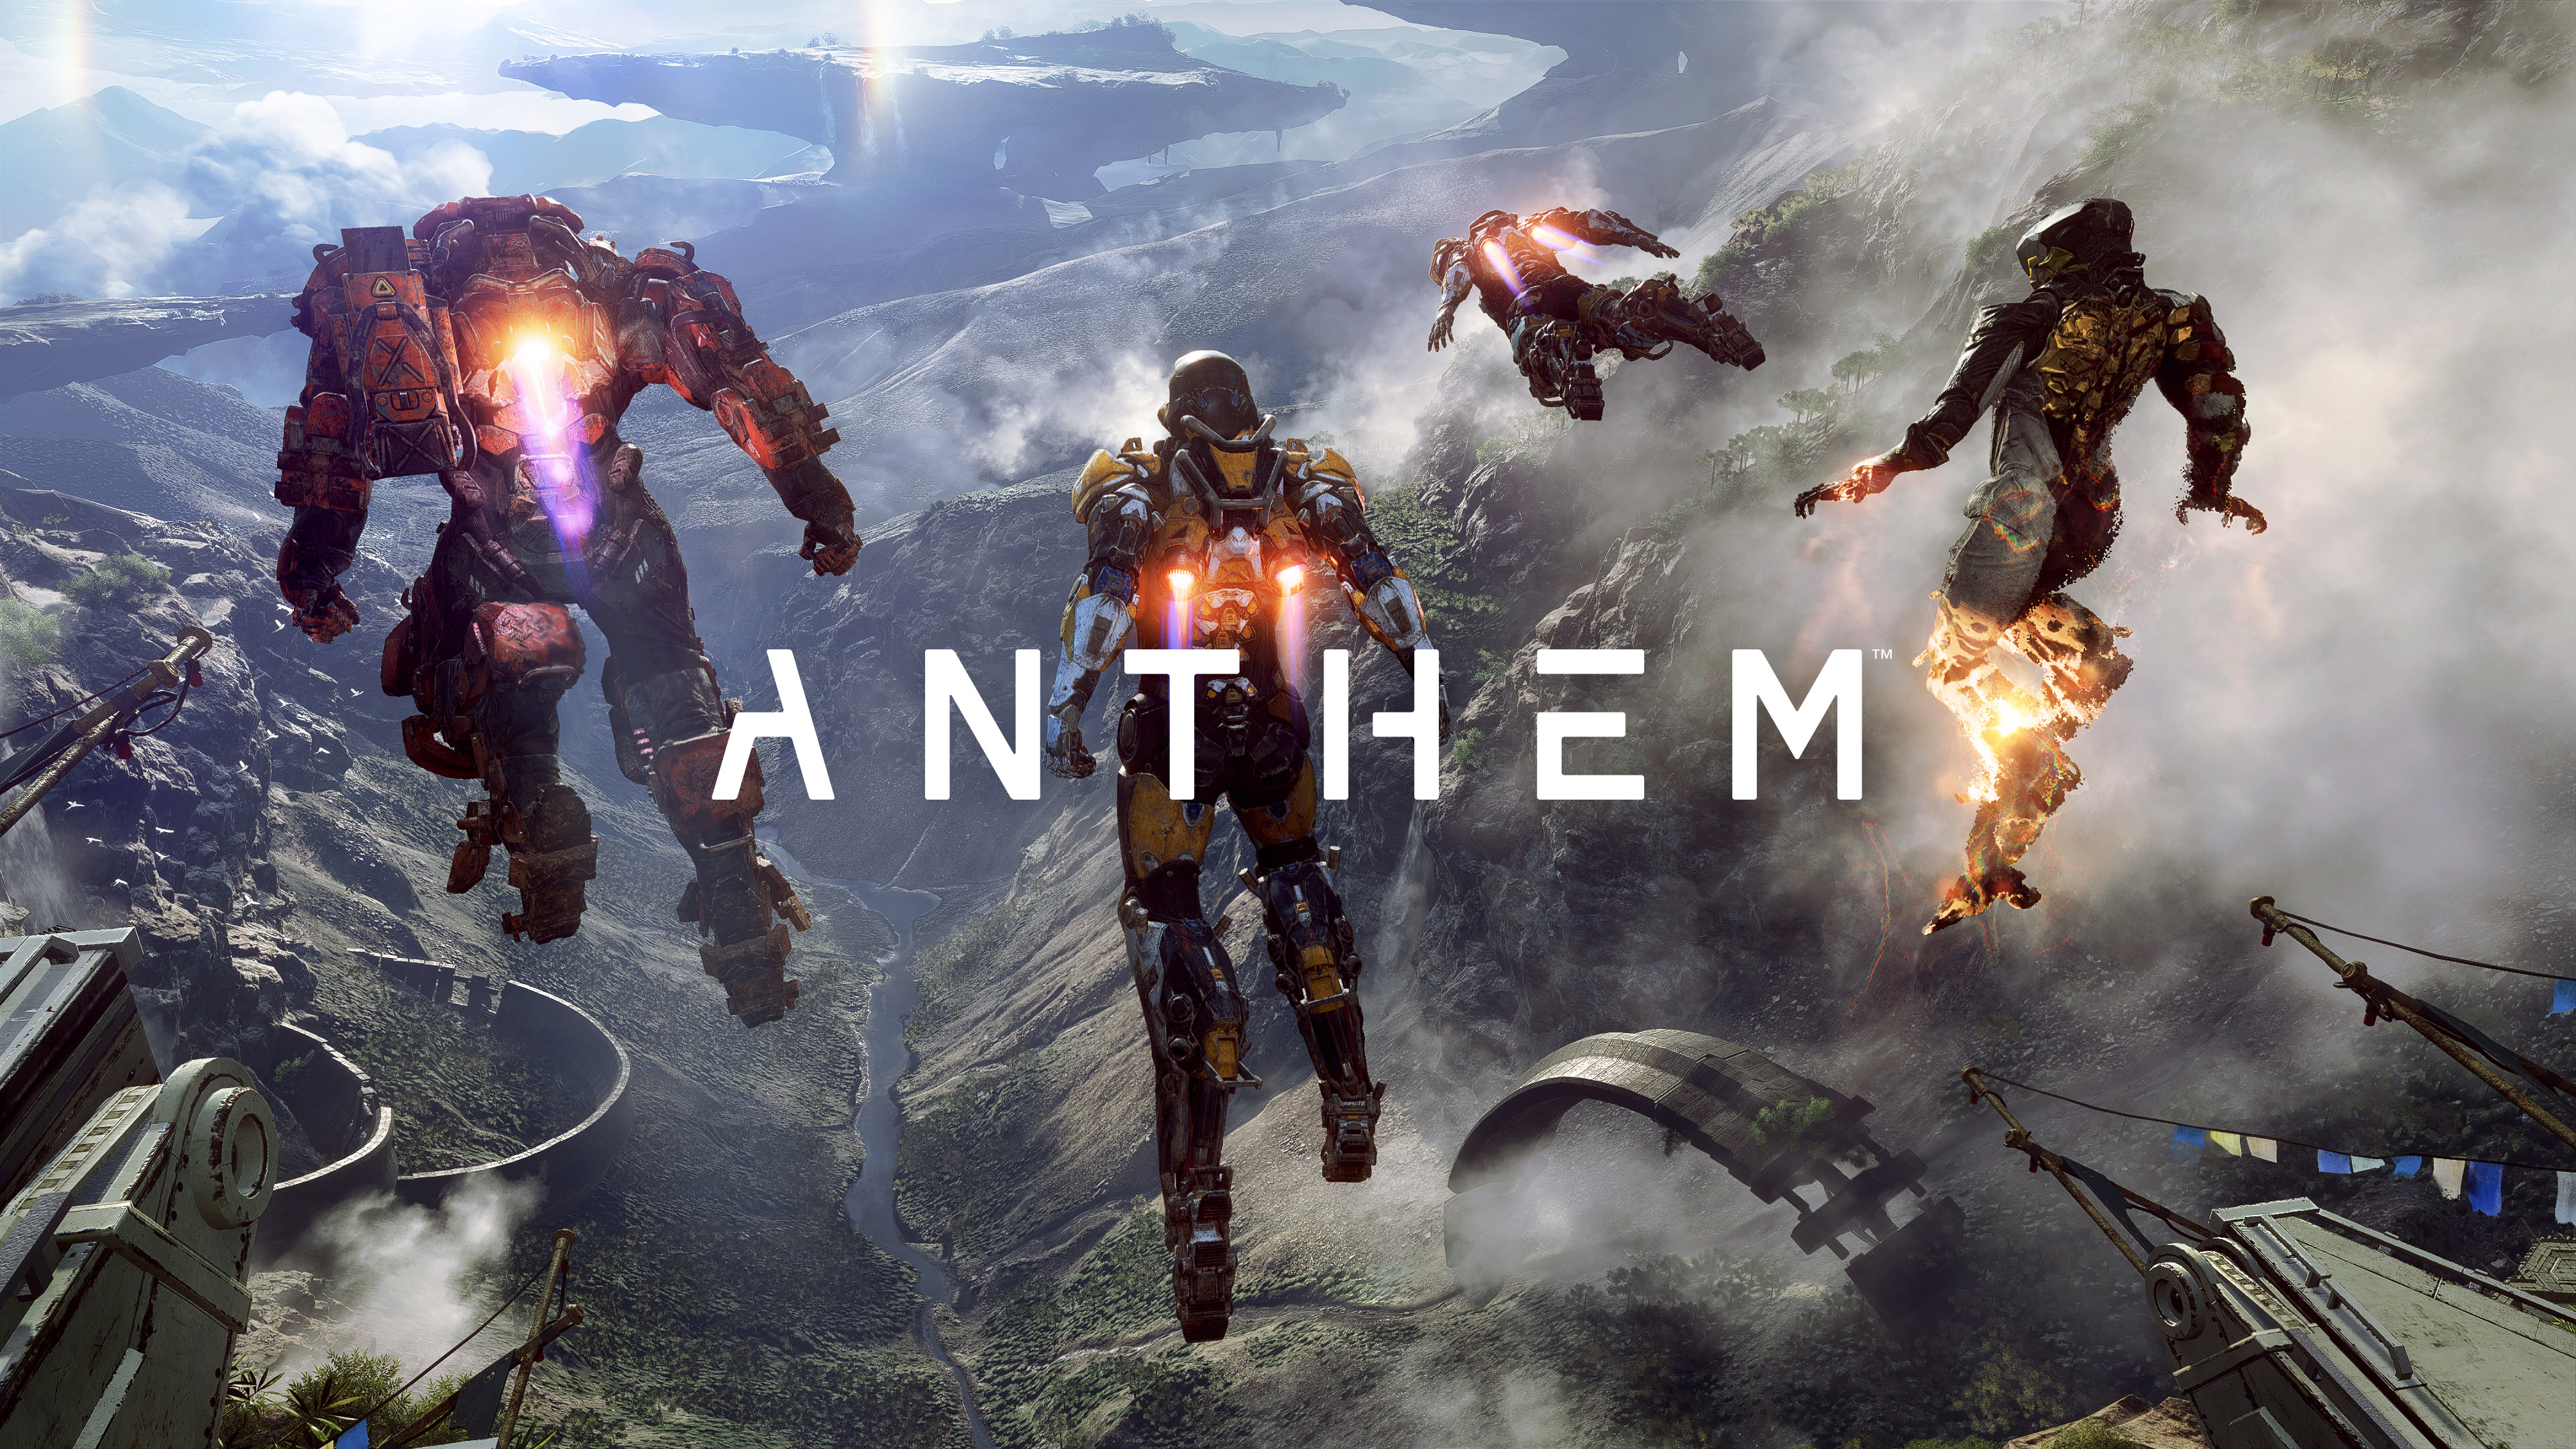 Anthem Hd Games 4k Wallpapers Images Backgrounds Photos And